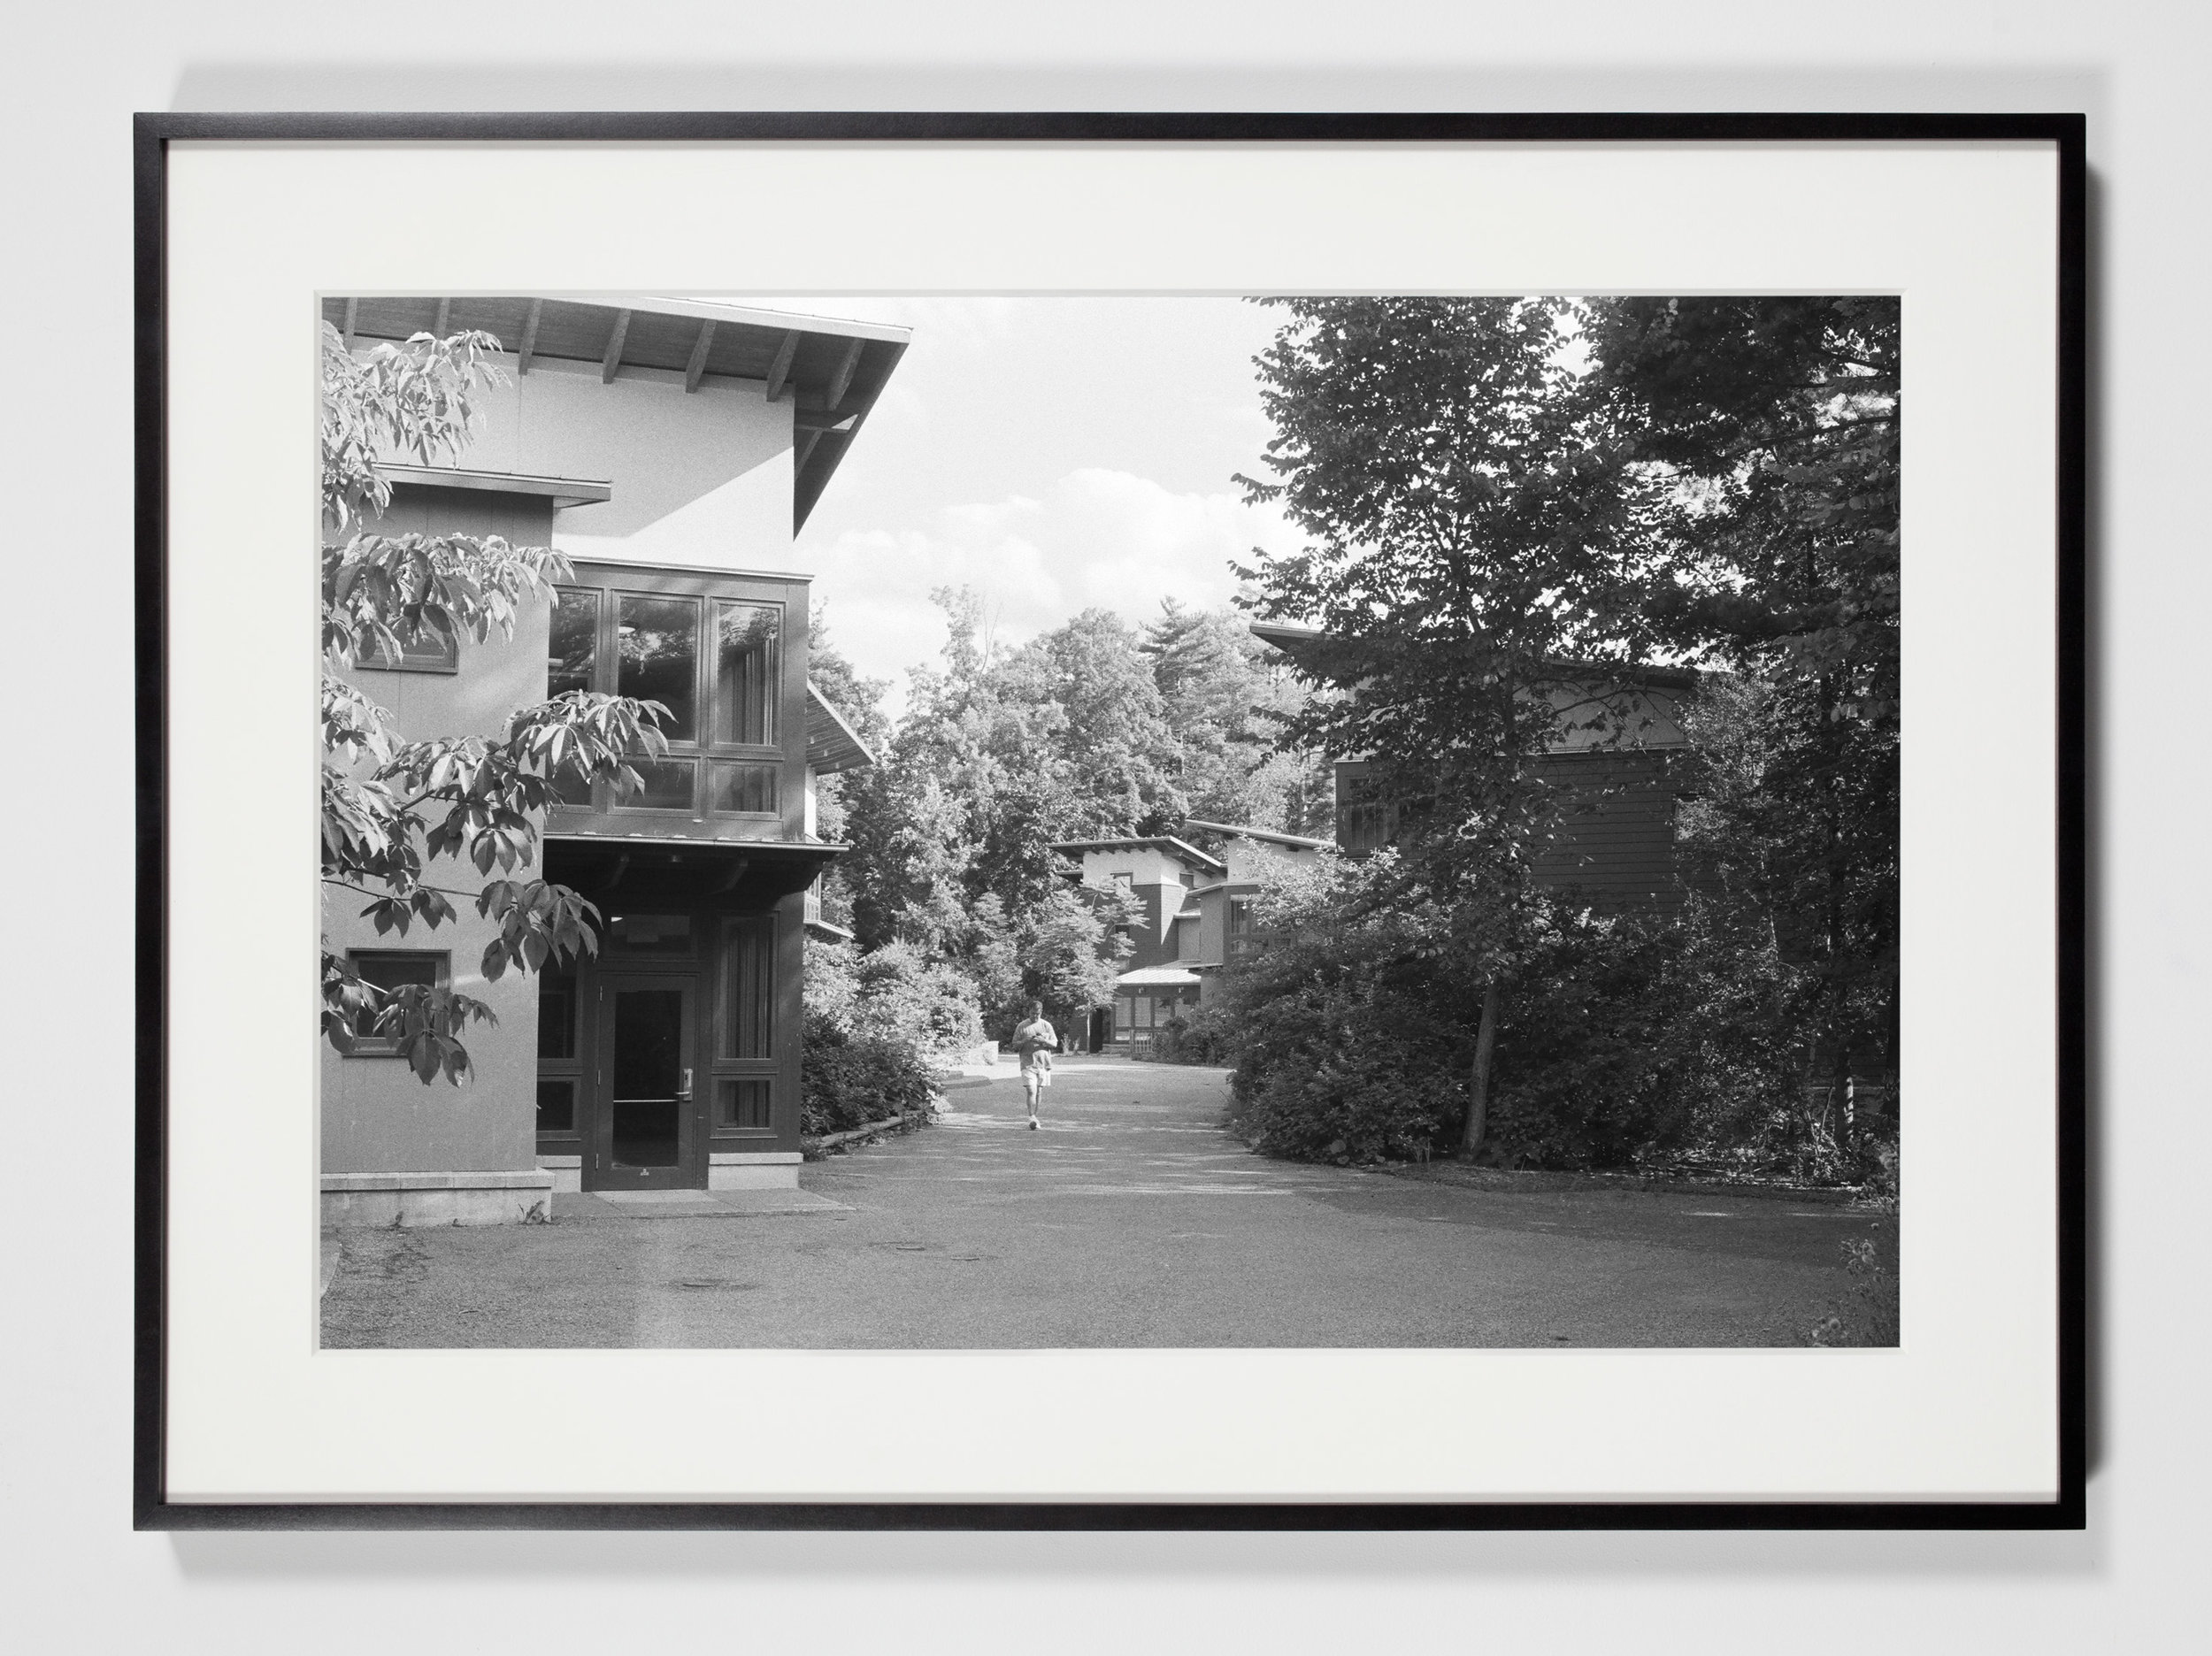 College Dormitories, Annandale-on-Hudson, New York, July 11, 2009    2011   Epson Ultrachrome K3 archival ink jet print on Hahnemühle Photo Rag paper  36 3/8 x 26 3/8 inches   Industrial Portraits, 2008–